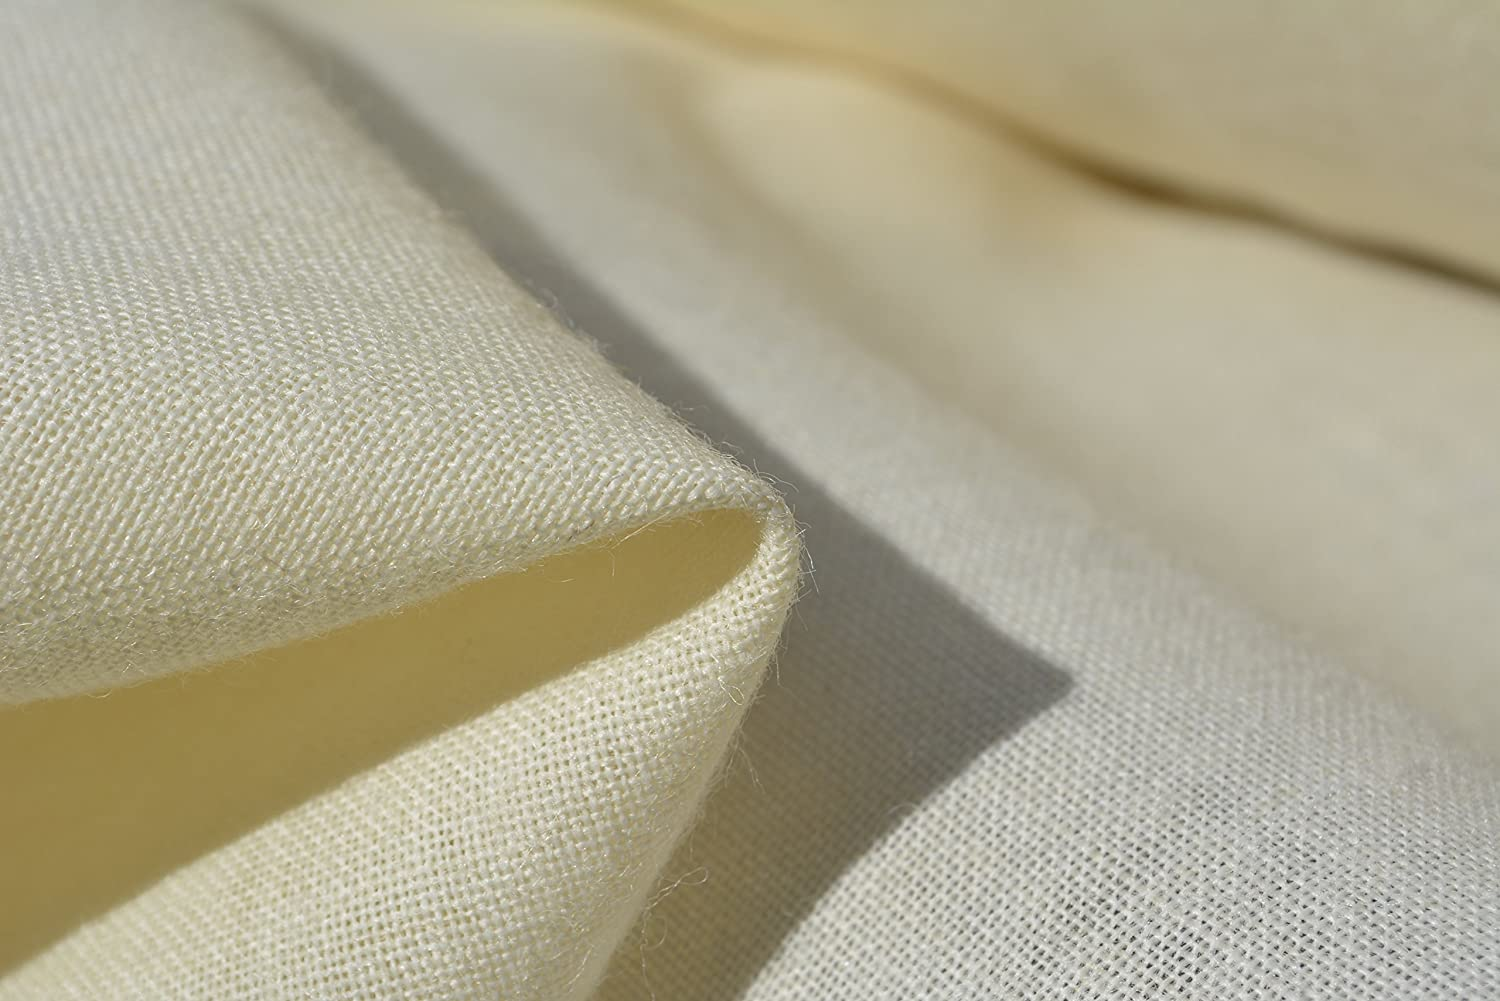 Med/heavy weight necktie INTERFACING / INTERLINING - AC Ter Kuile - finest available - 65/65WAP-29 - Wool blend - Made in Netherlands